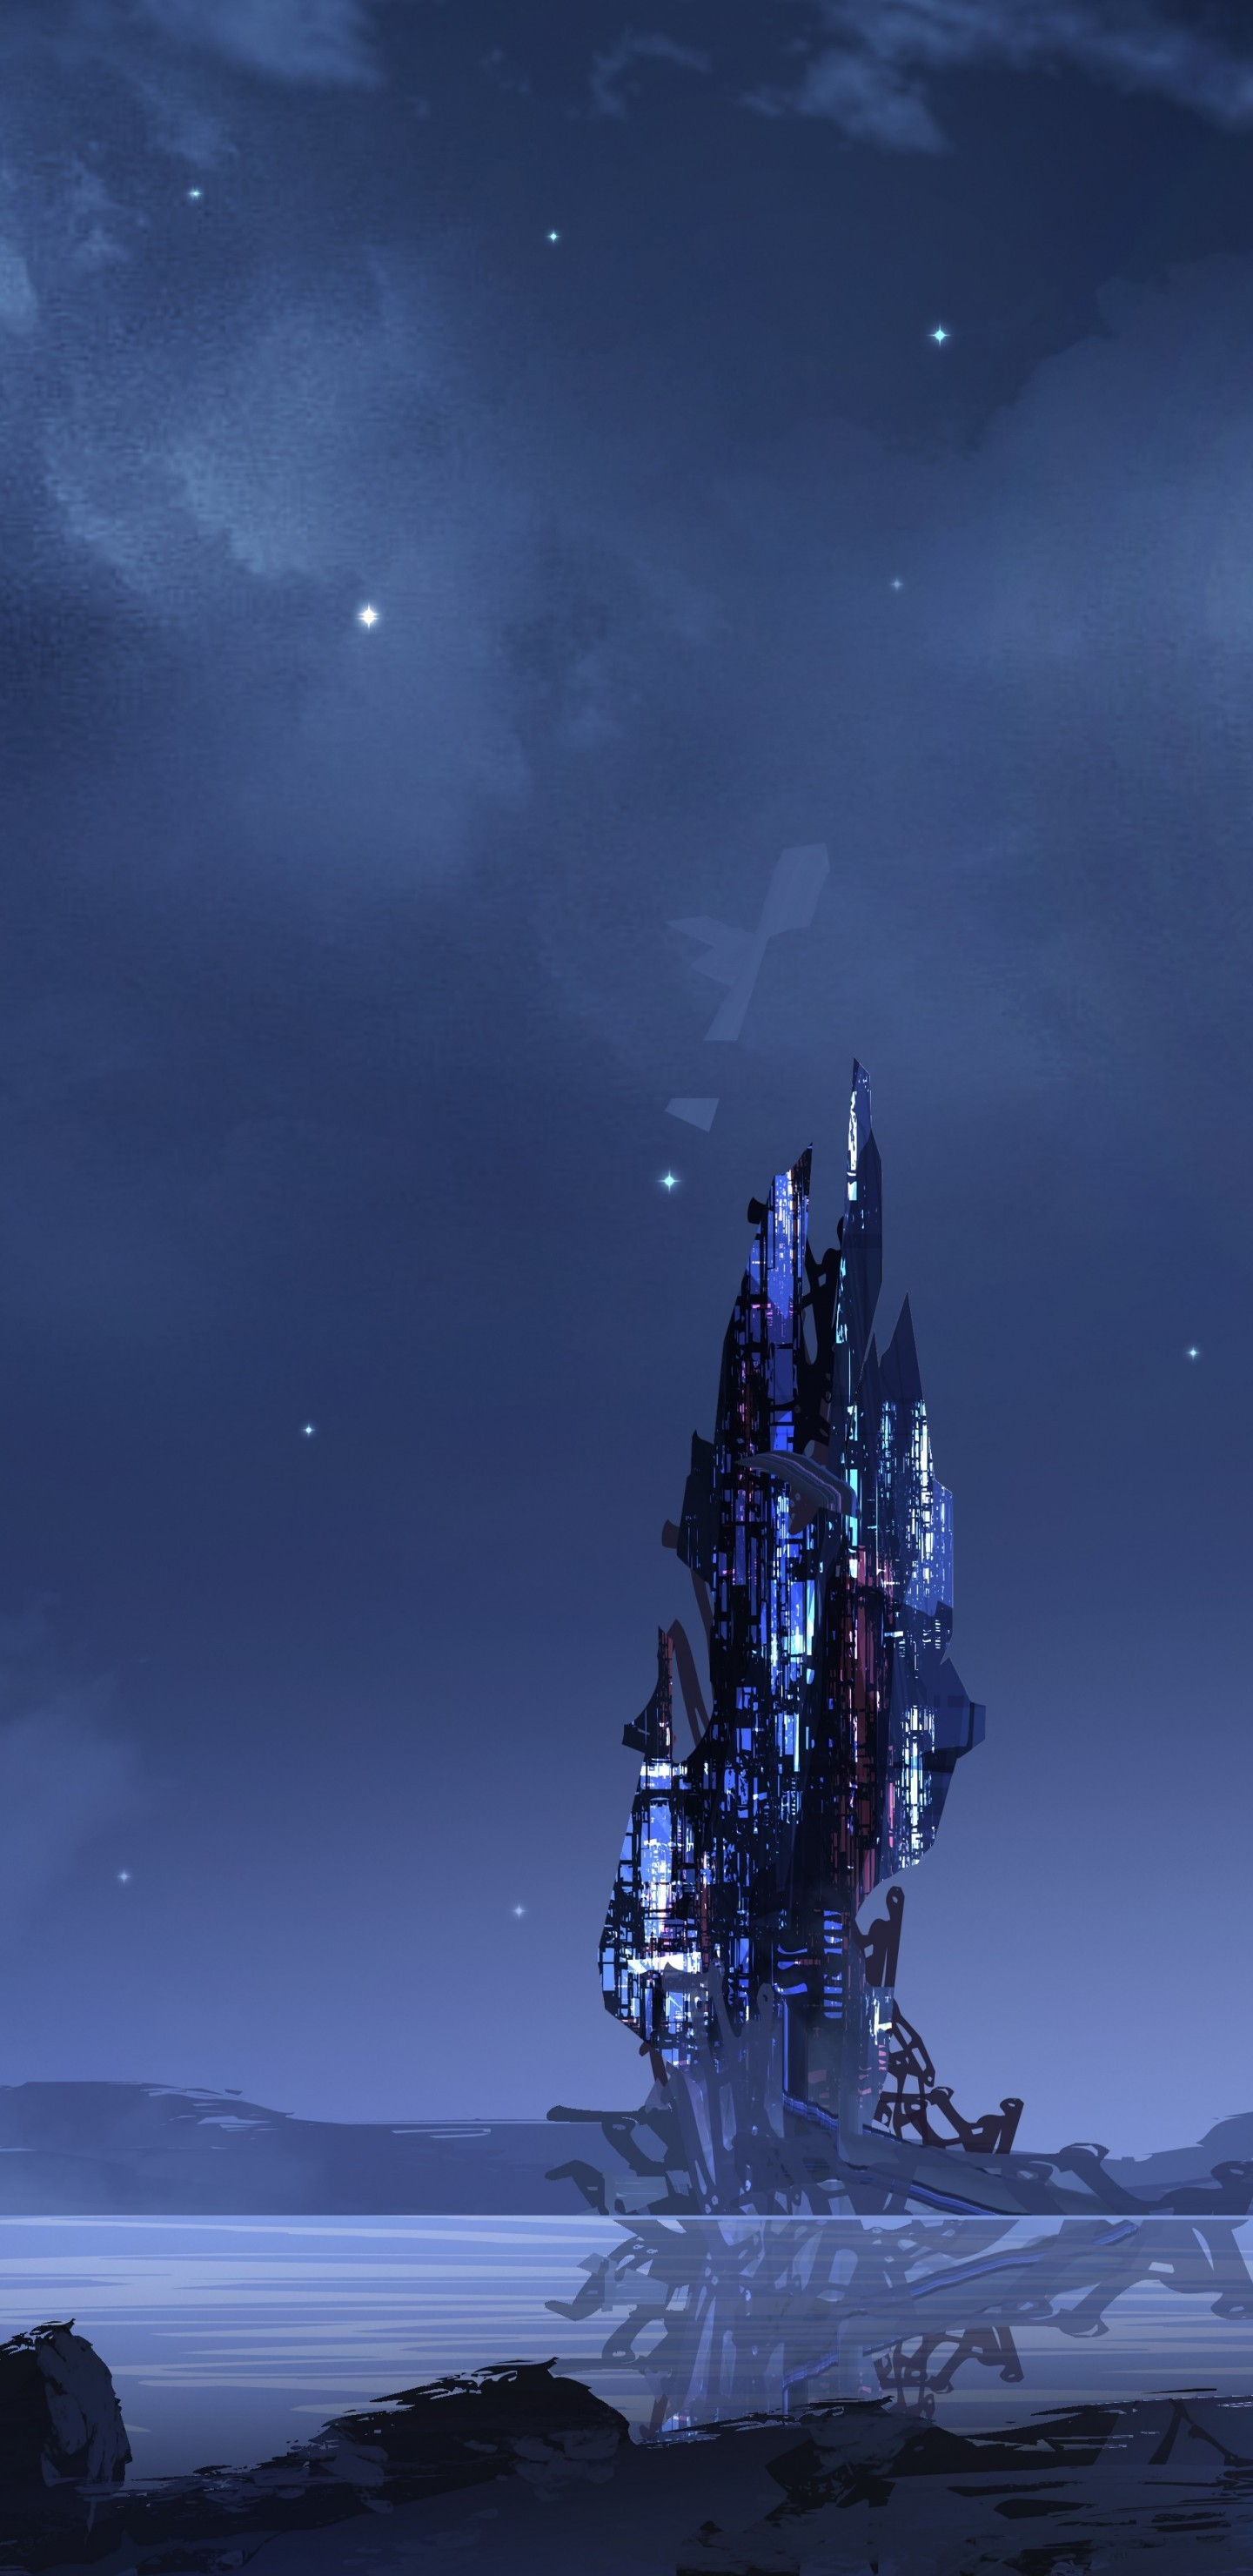 1440x2960 - Sci Fi Building Wallpapers 36